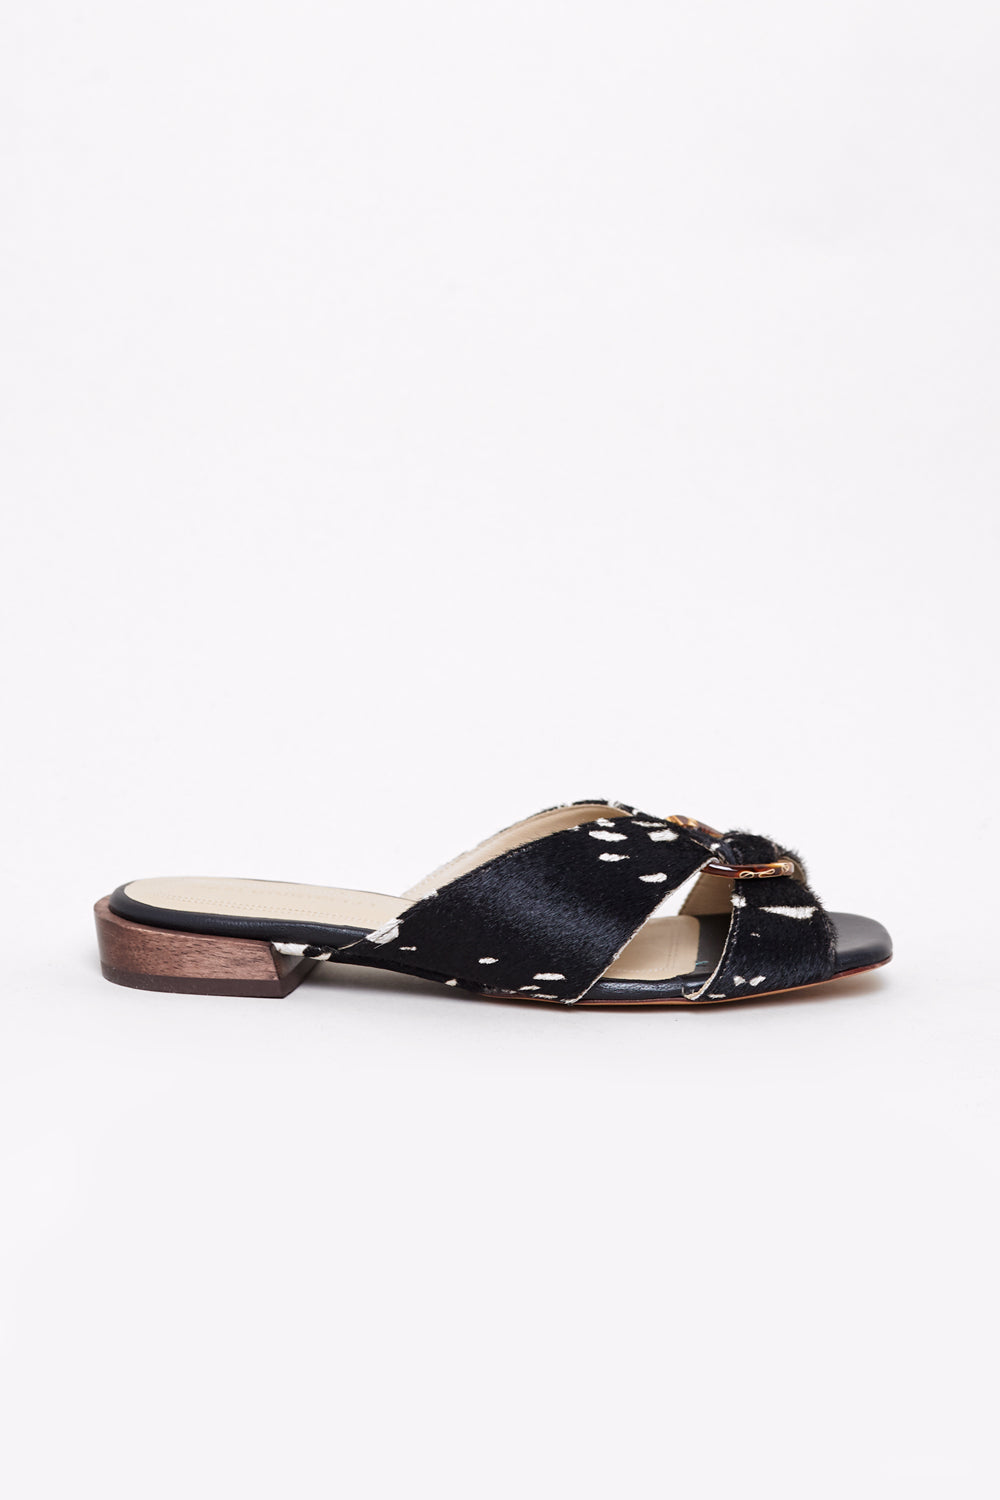 Cissa Sandal in Black/White Pony